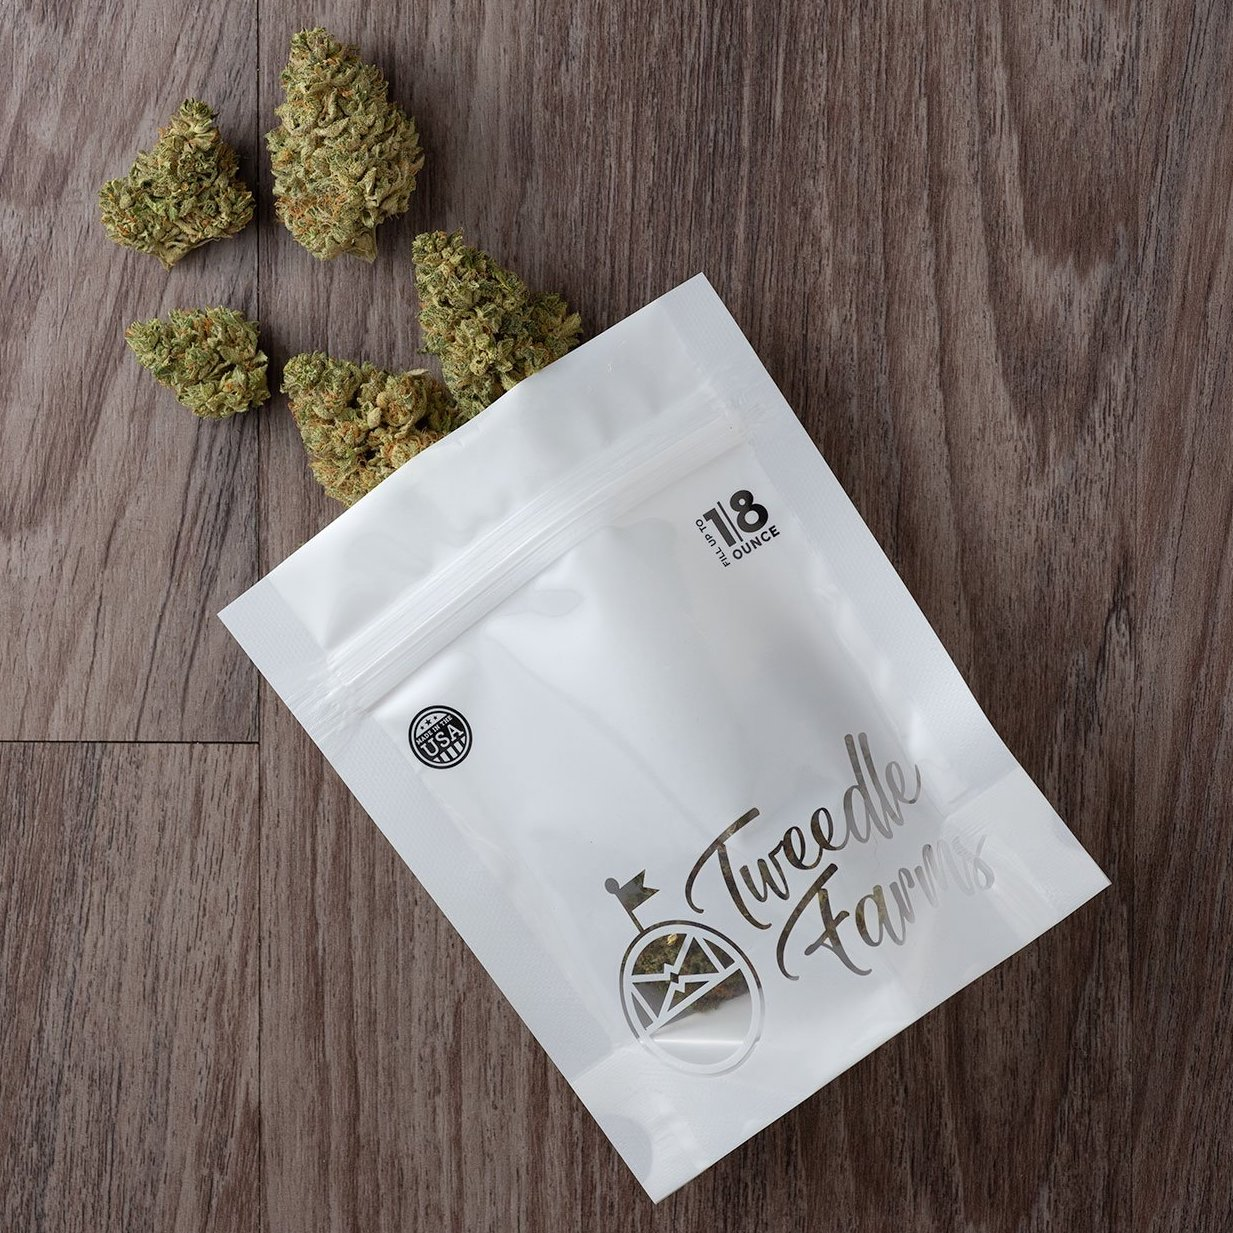 Learn About Our New Terploc Bags!